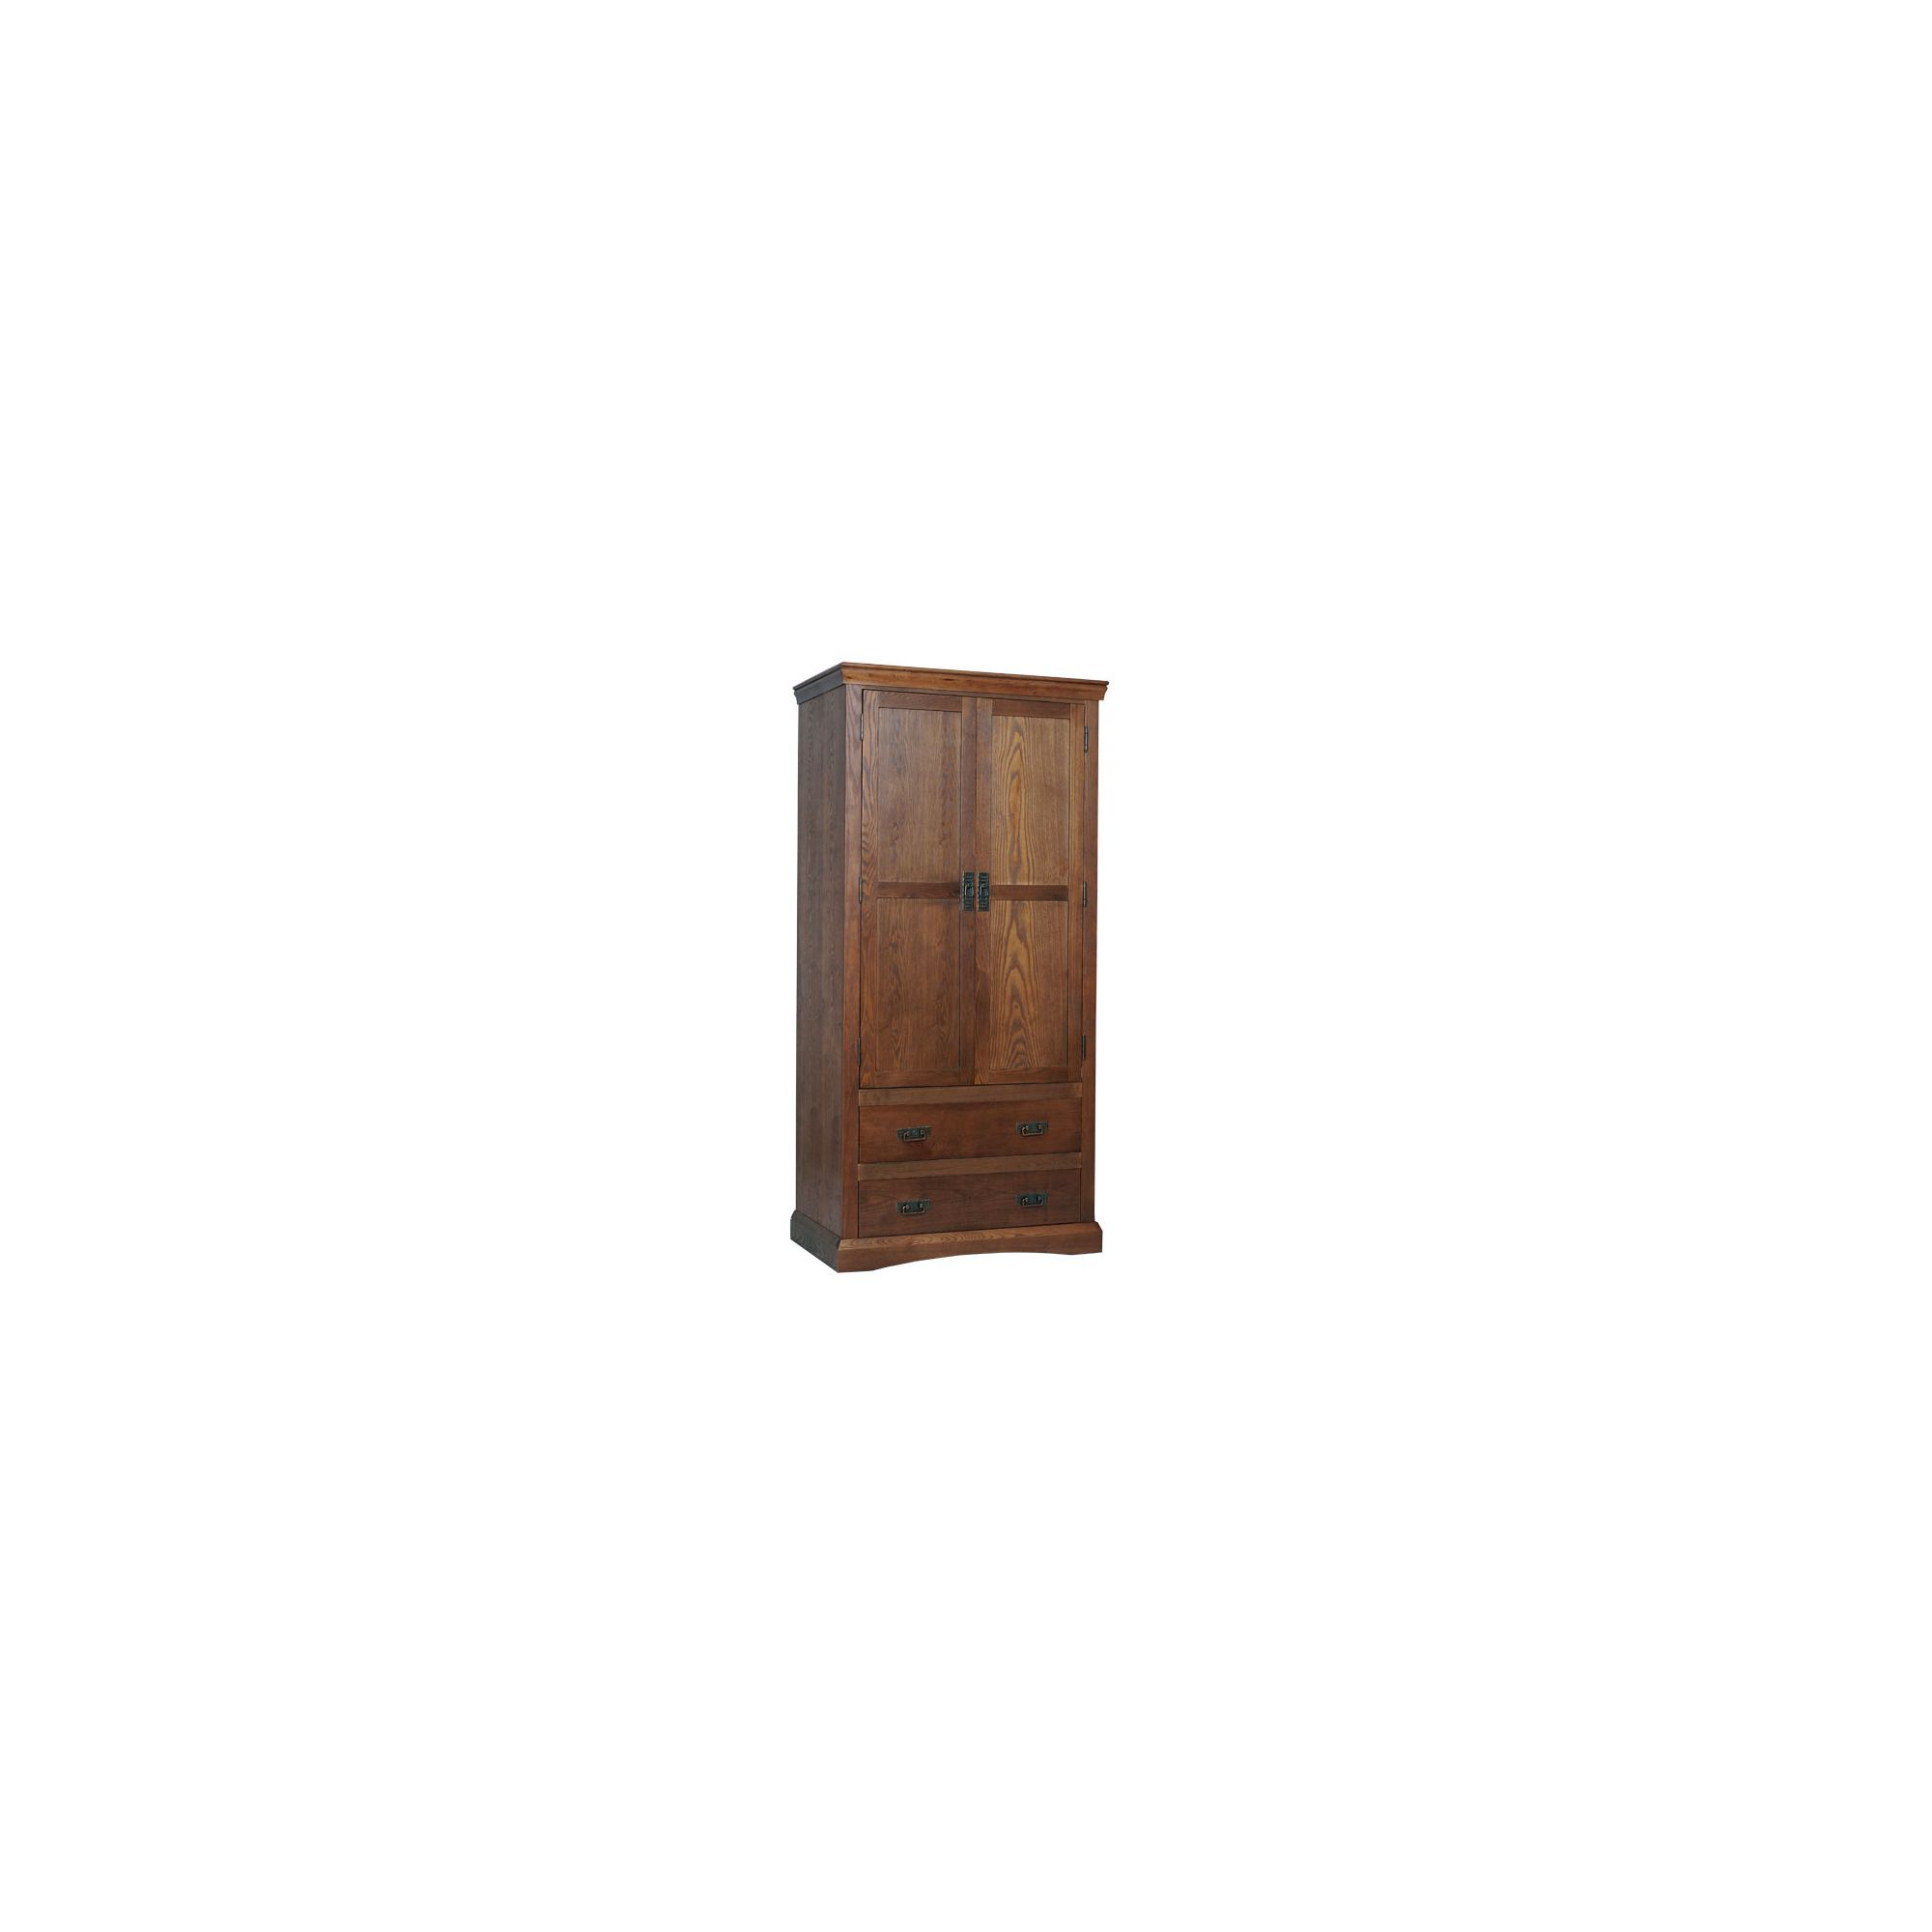 Home Essence Paris 2 Door 2 Drawer Wardrobe at Tesco Direct